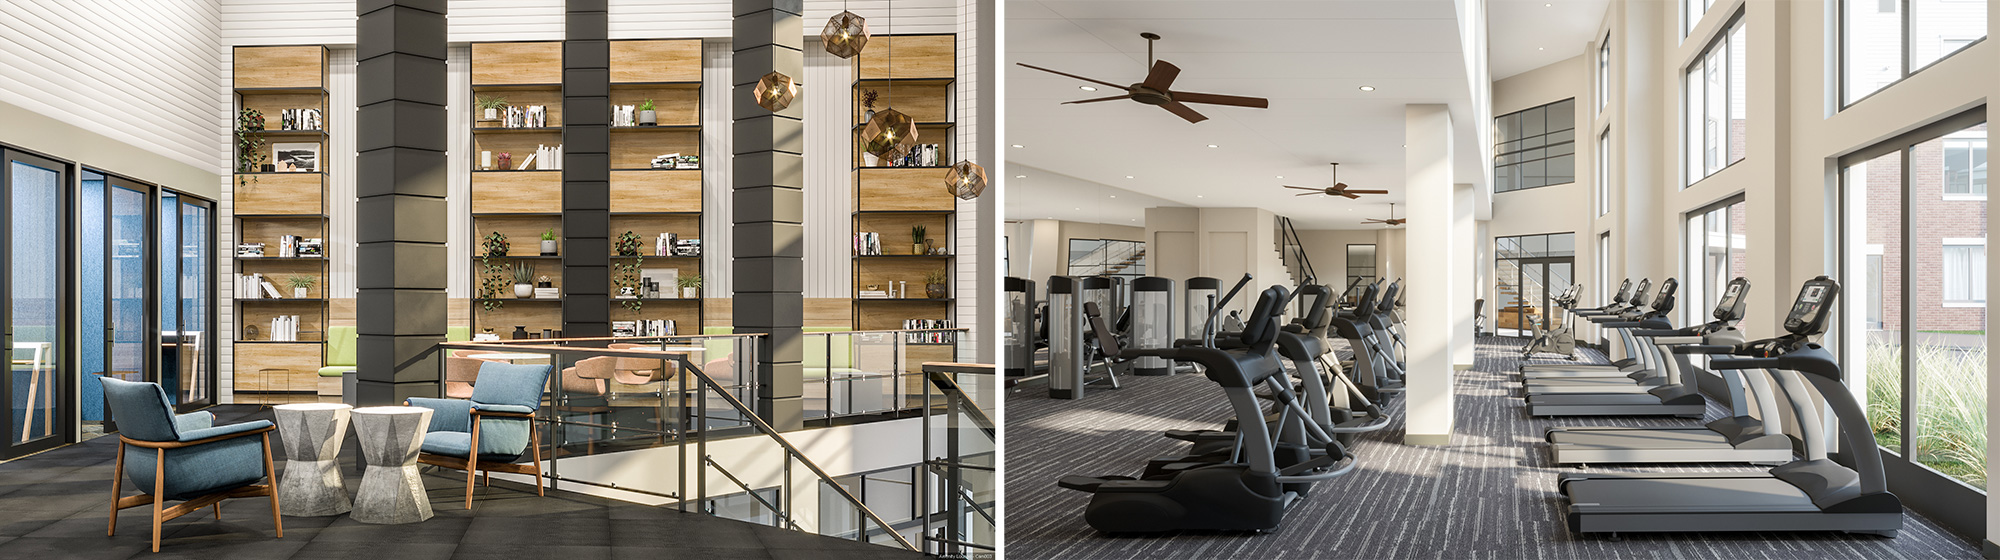 Rendering of Resident Lounge and Fitness Center at Bay 151 - Hudson Projects